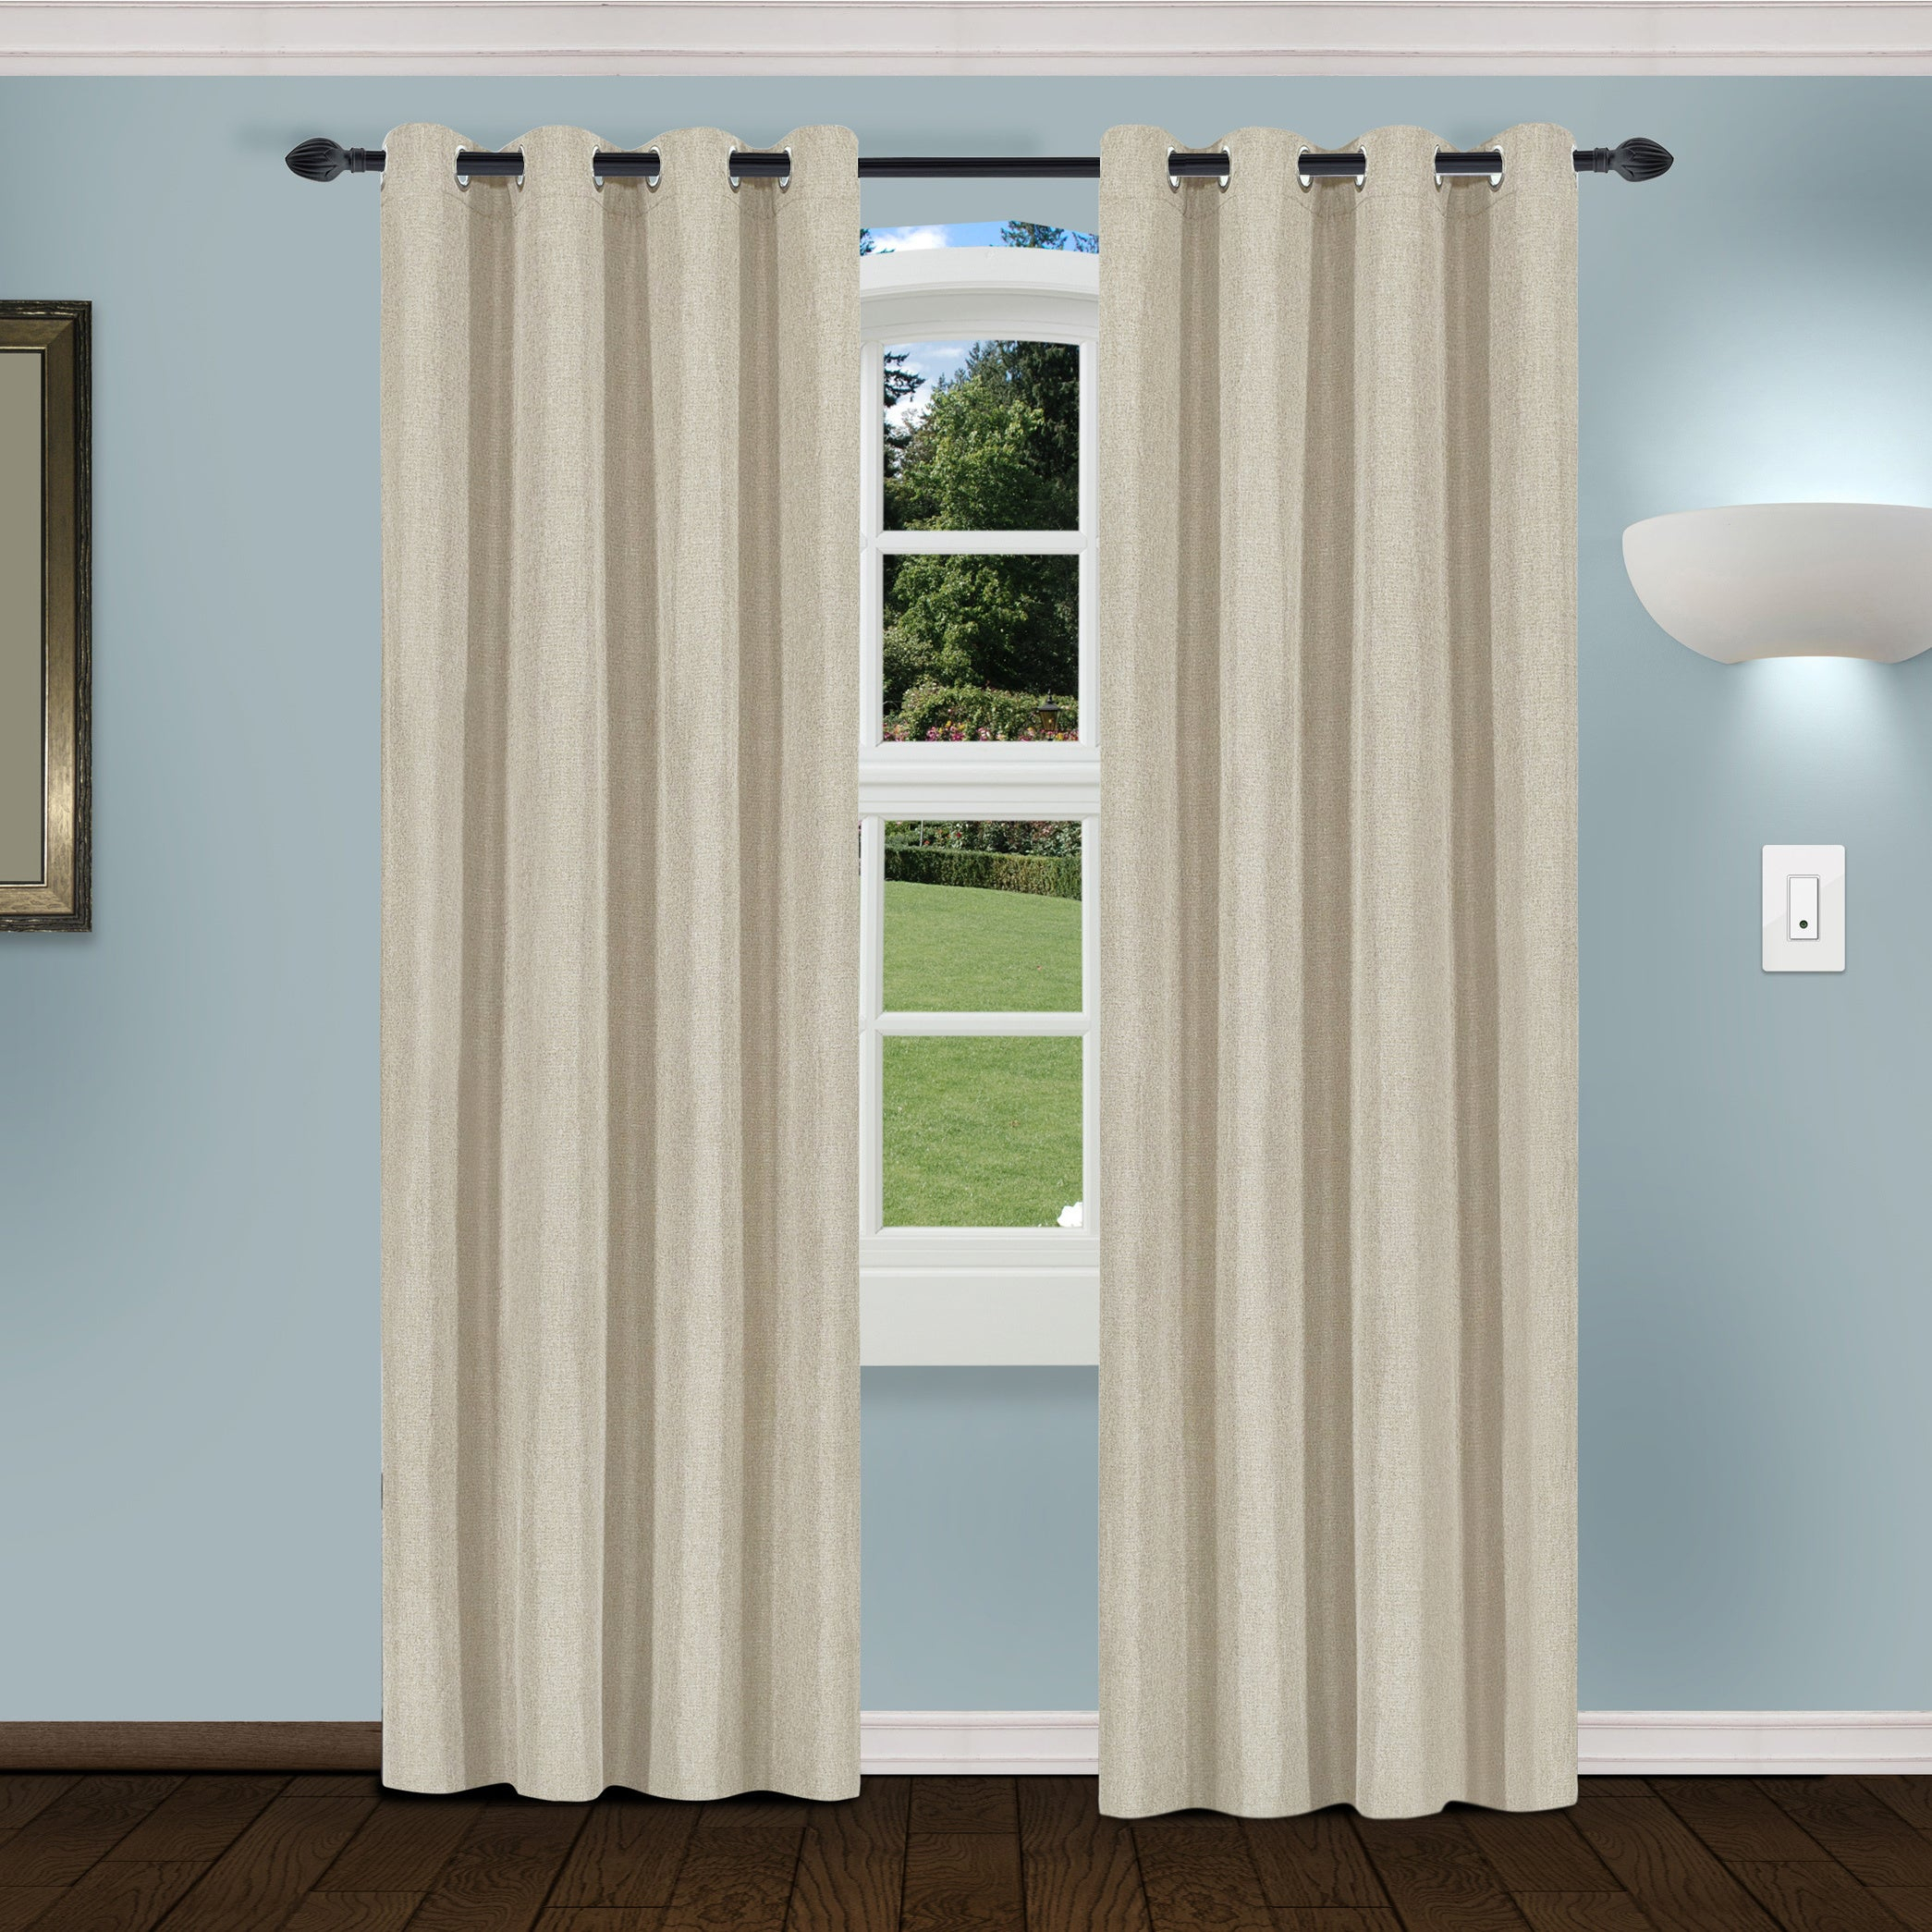 Superior Linen Insulated Thermal Blackout Grommet Curtain Panel Pair Pertaining To Superior Solid Insulated Thermal Blackout Grommet Curtain Panel Pairs (View 11 of 30)